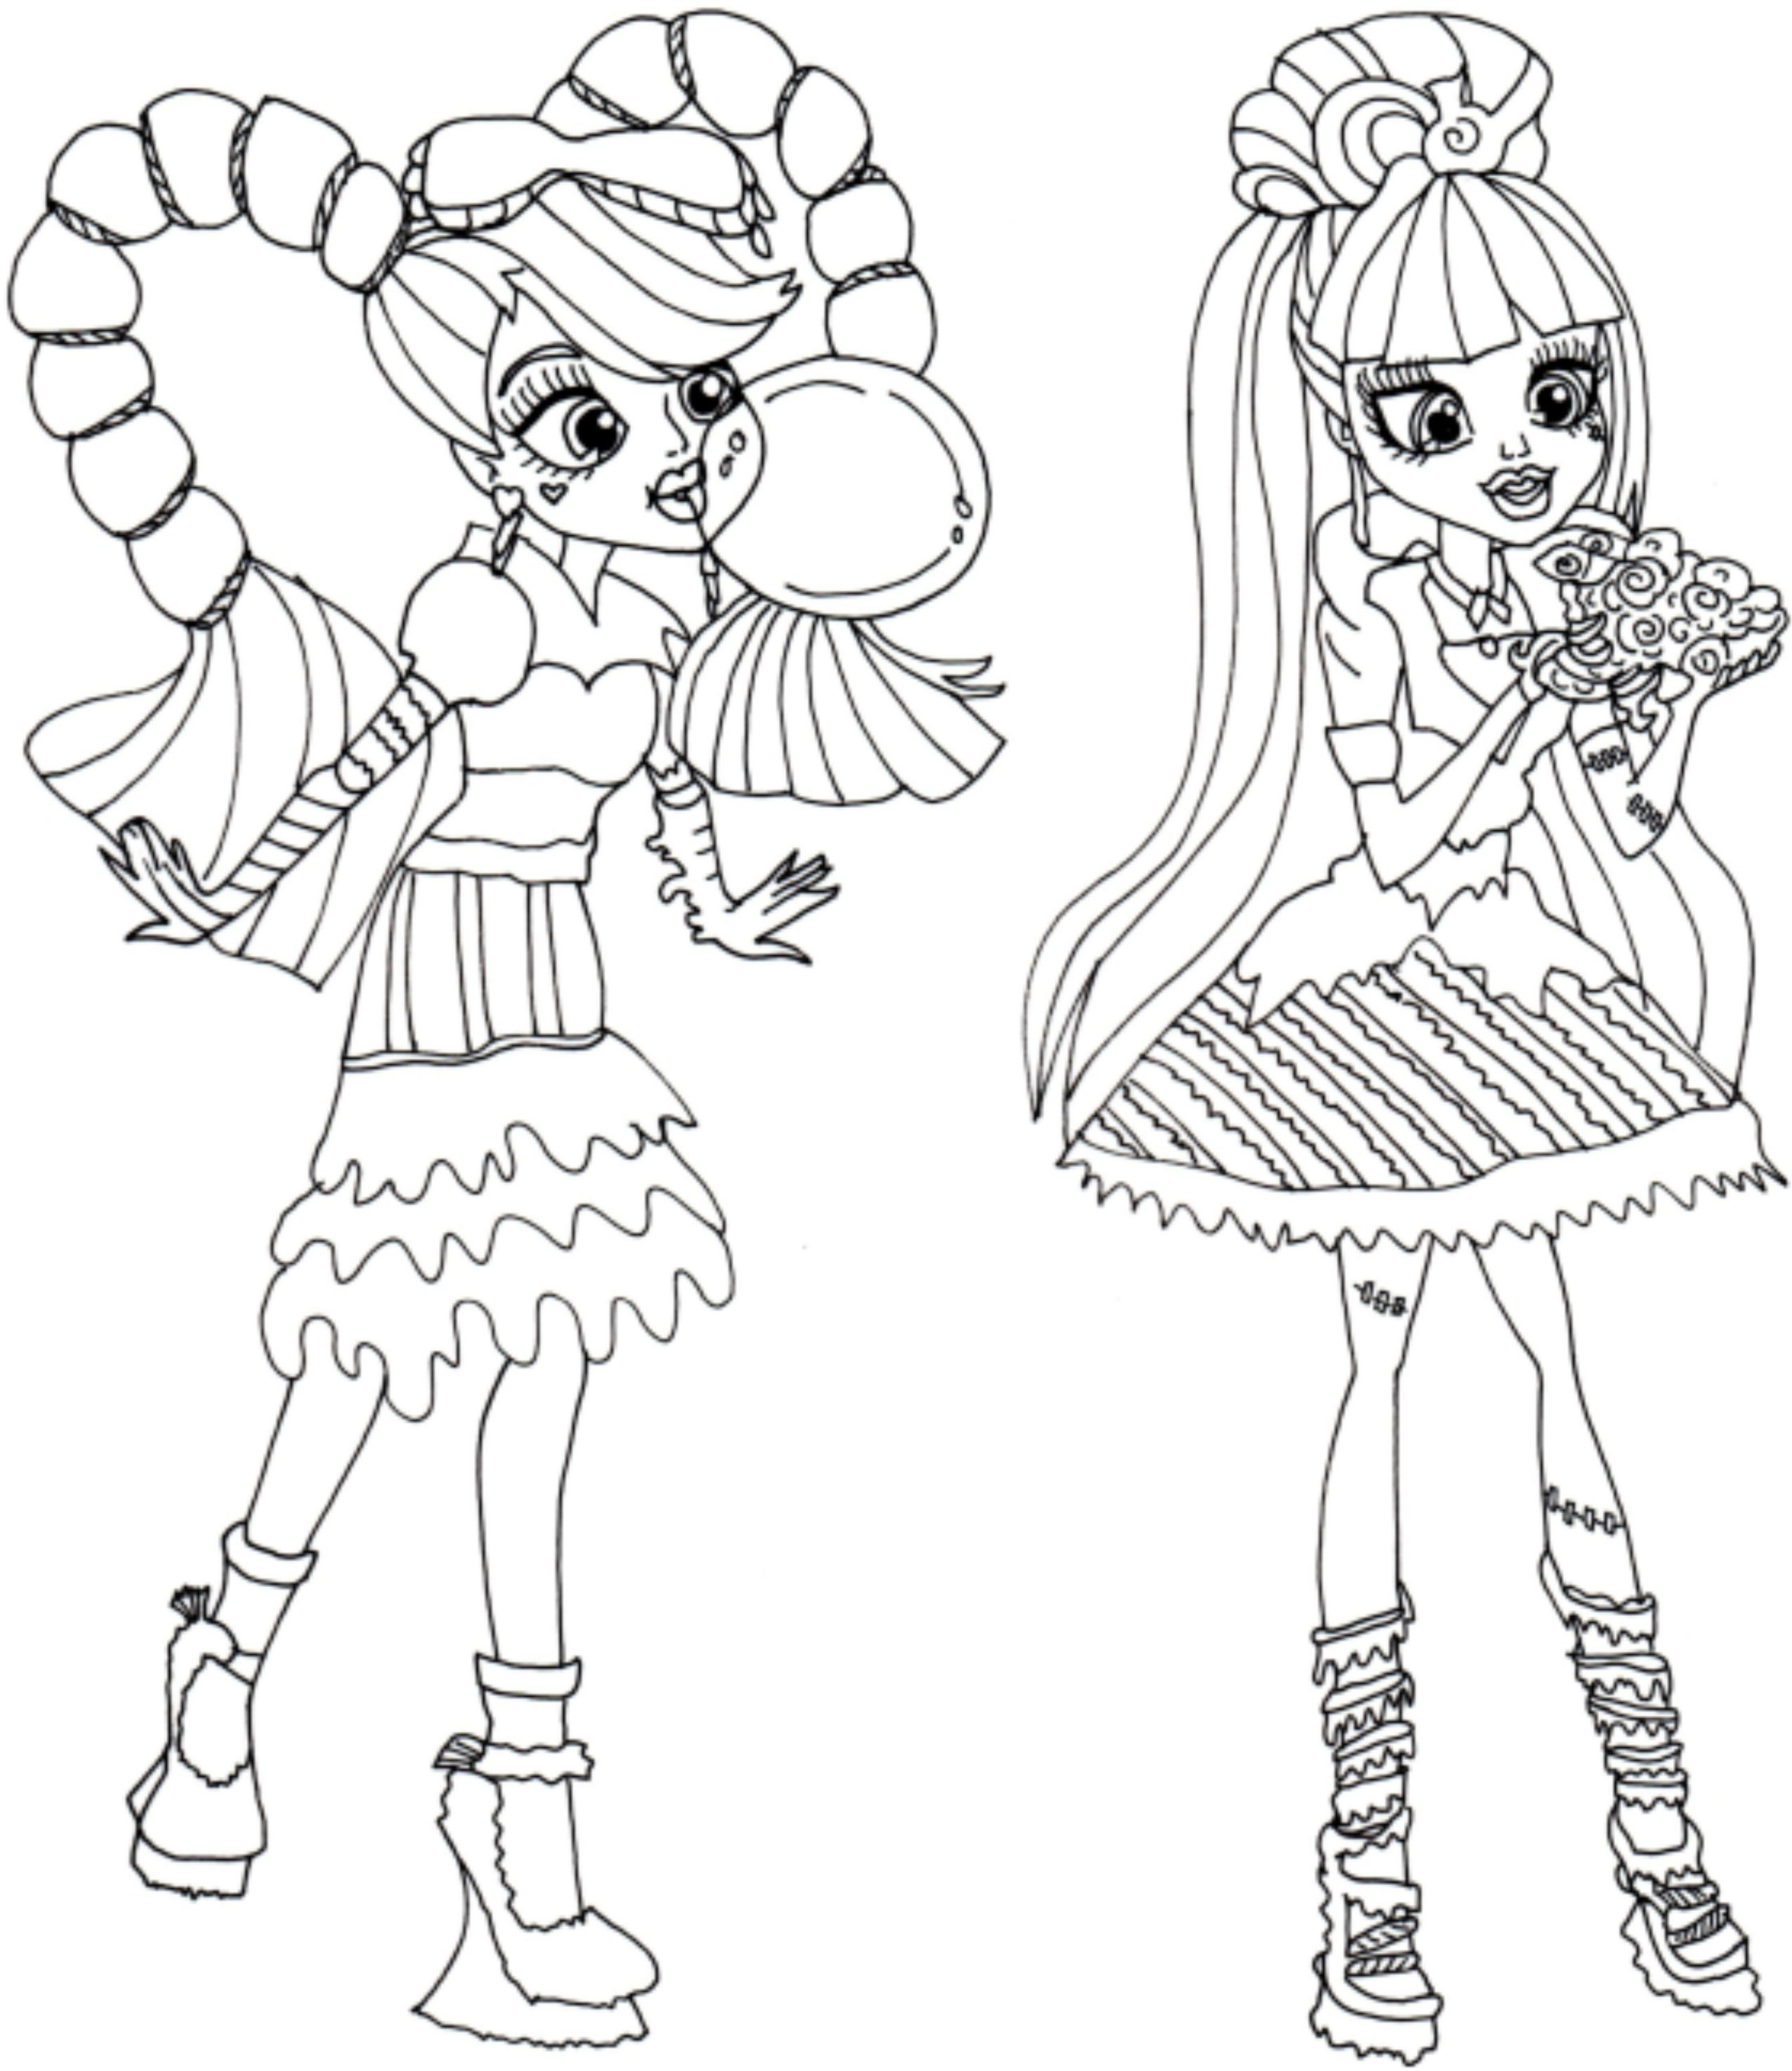 Monster High Malvorlage Neu Baby Monster High Coloring Pages Coloring Pages Coloring Pages Fotos